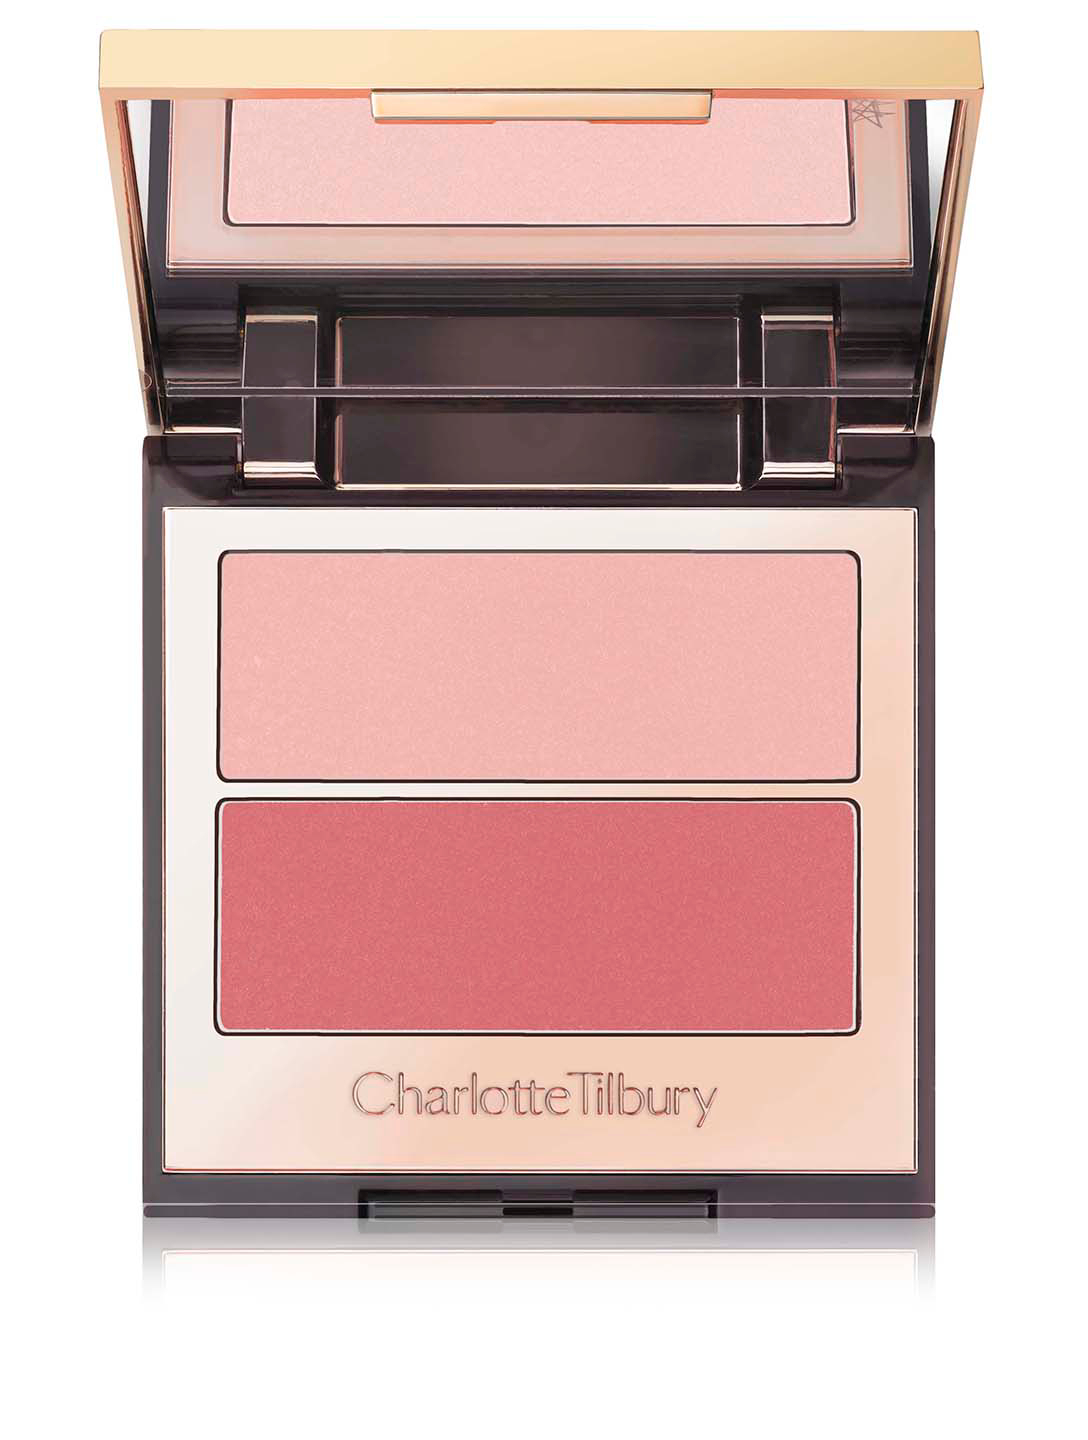 CHARLOTTE TILBURY Pretty Youth Glow Blush Beauty Pink